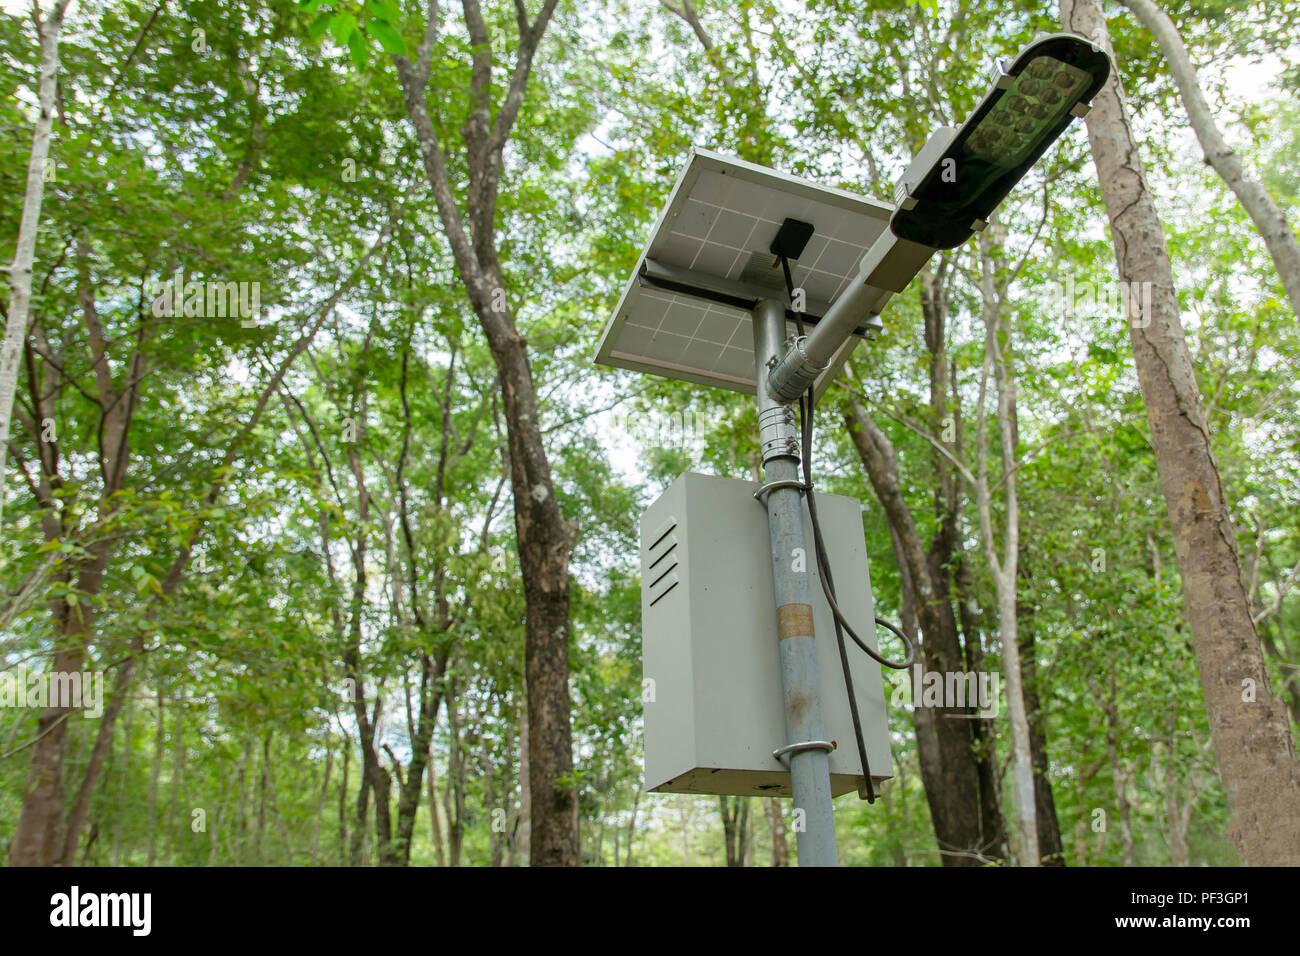 https www alamy com outdoor lighting pole street light led pole with small solar cell panel in public park image215823273 html